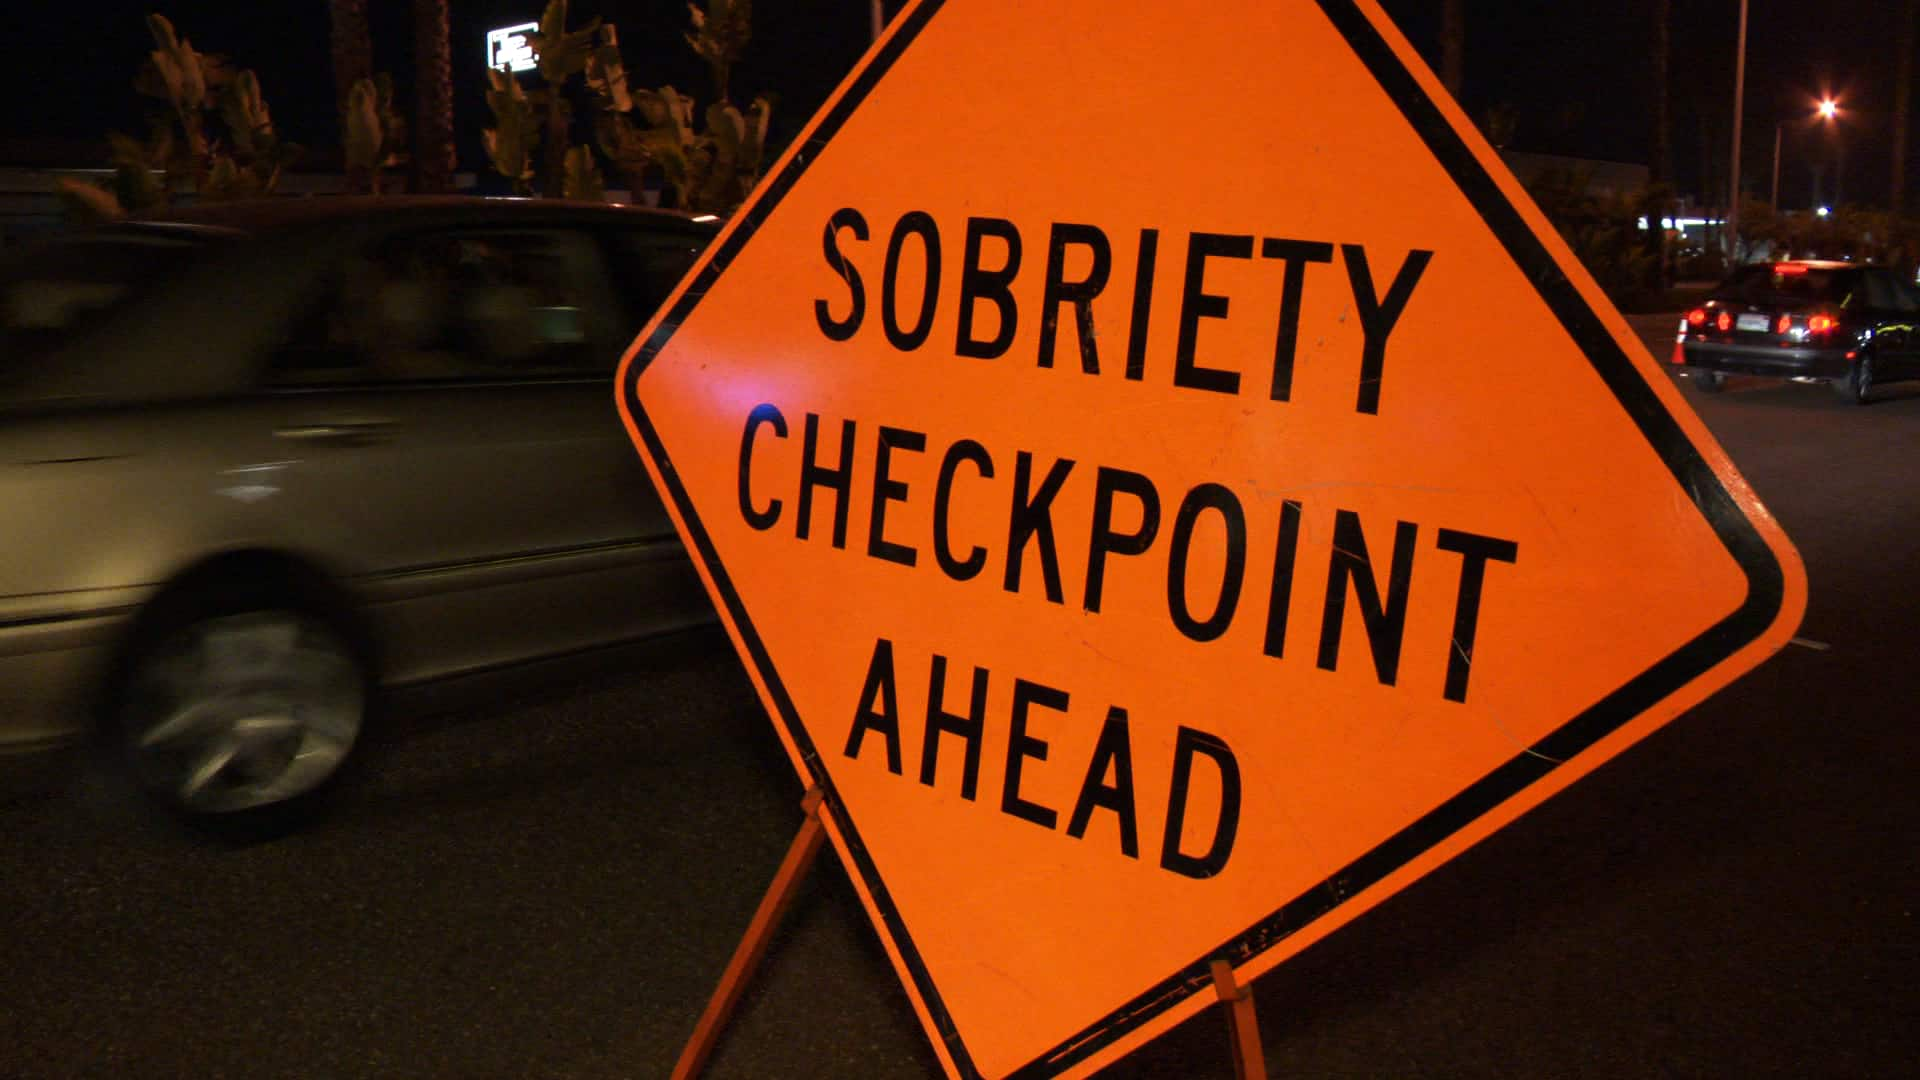 Missouri, sobriety, attorney, MO, dui, legal, lawyer, sr22, non-owner, non-driver, without a car, checkpoint, rehab